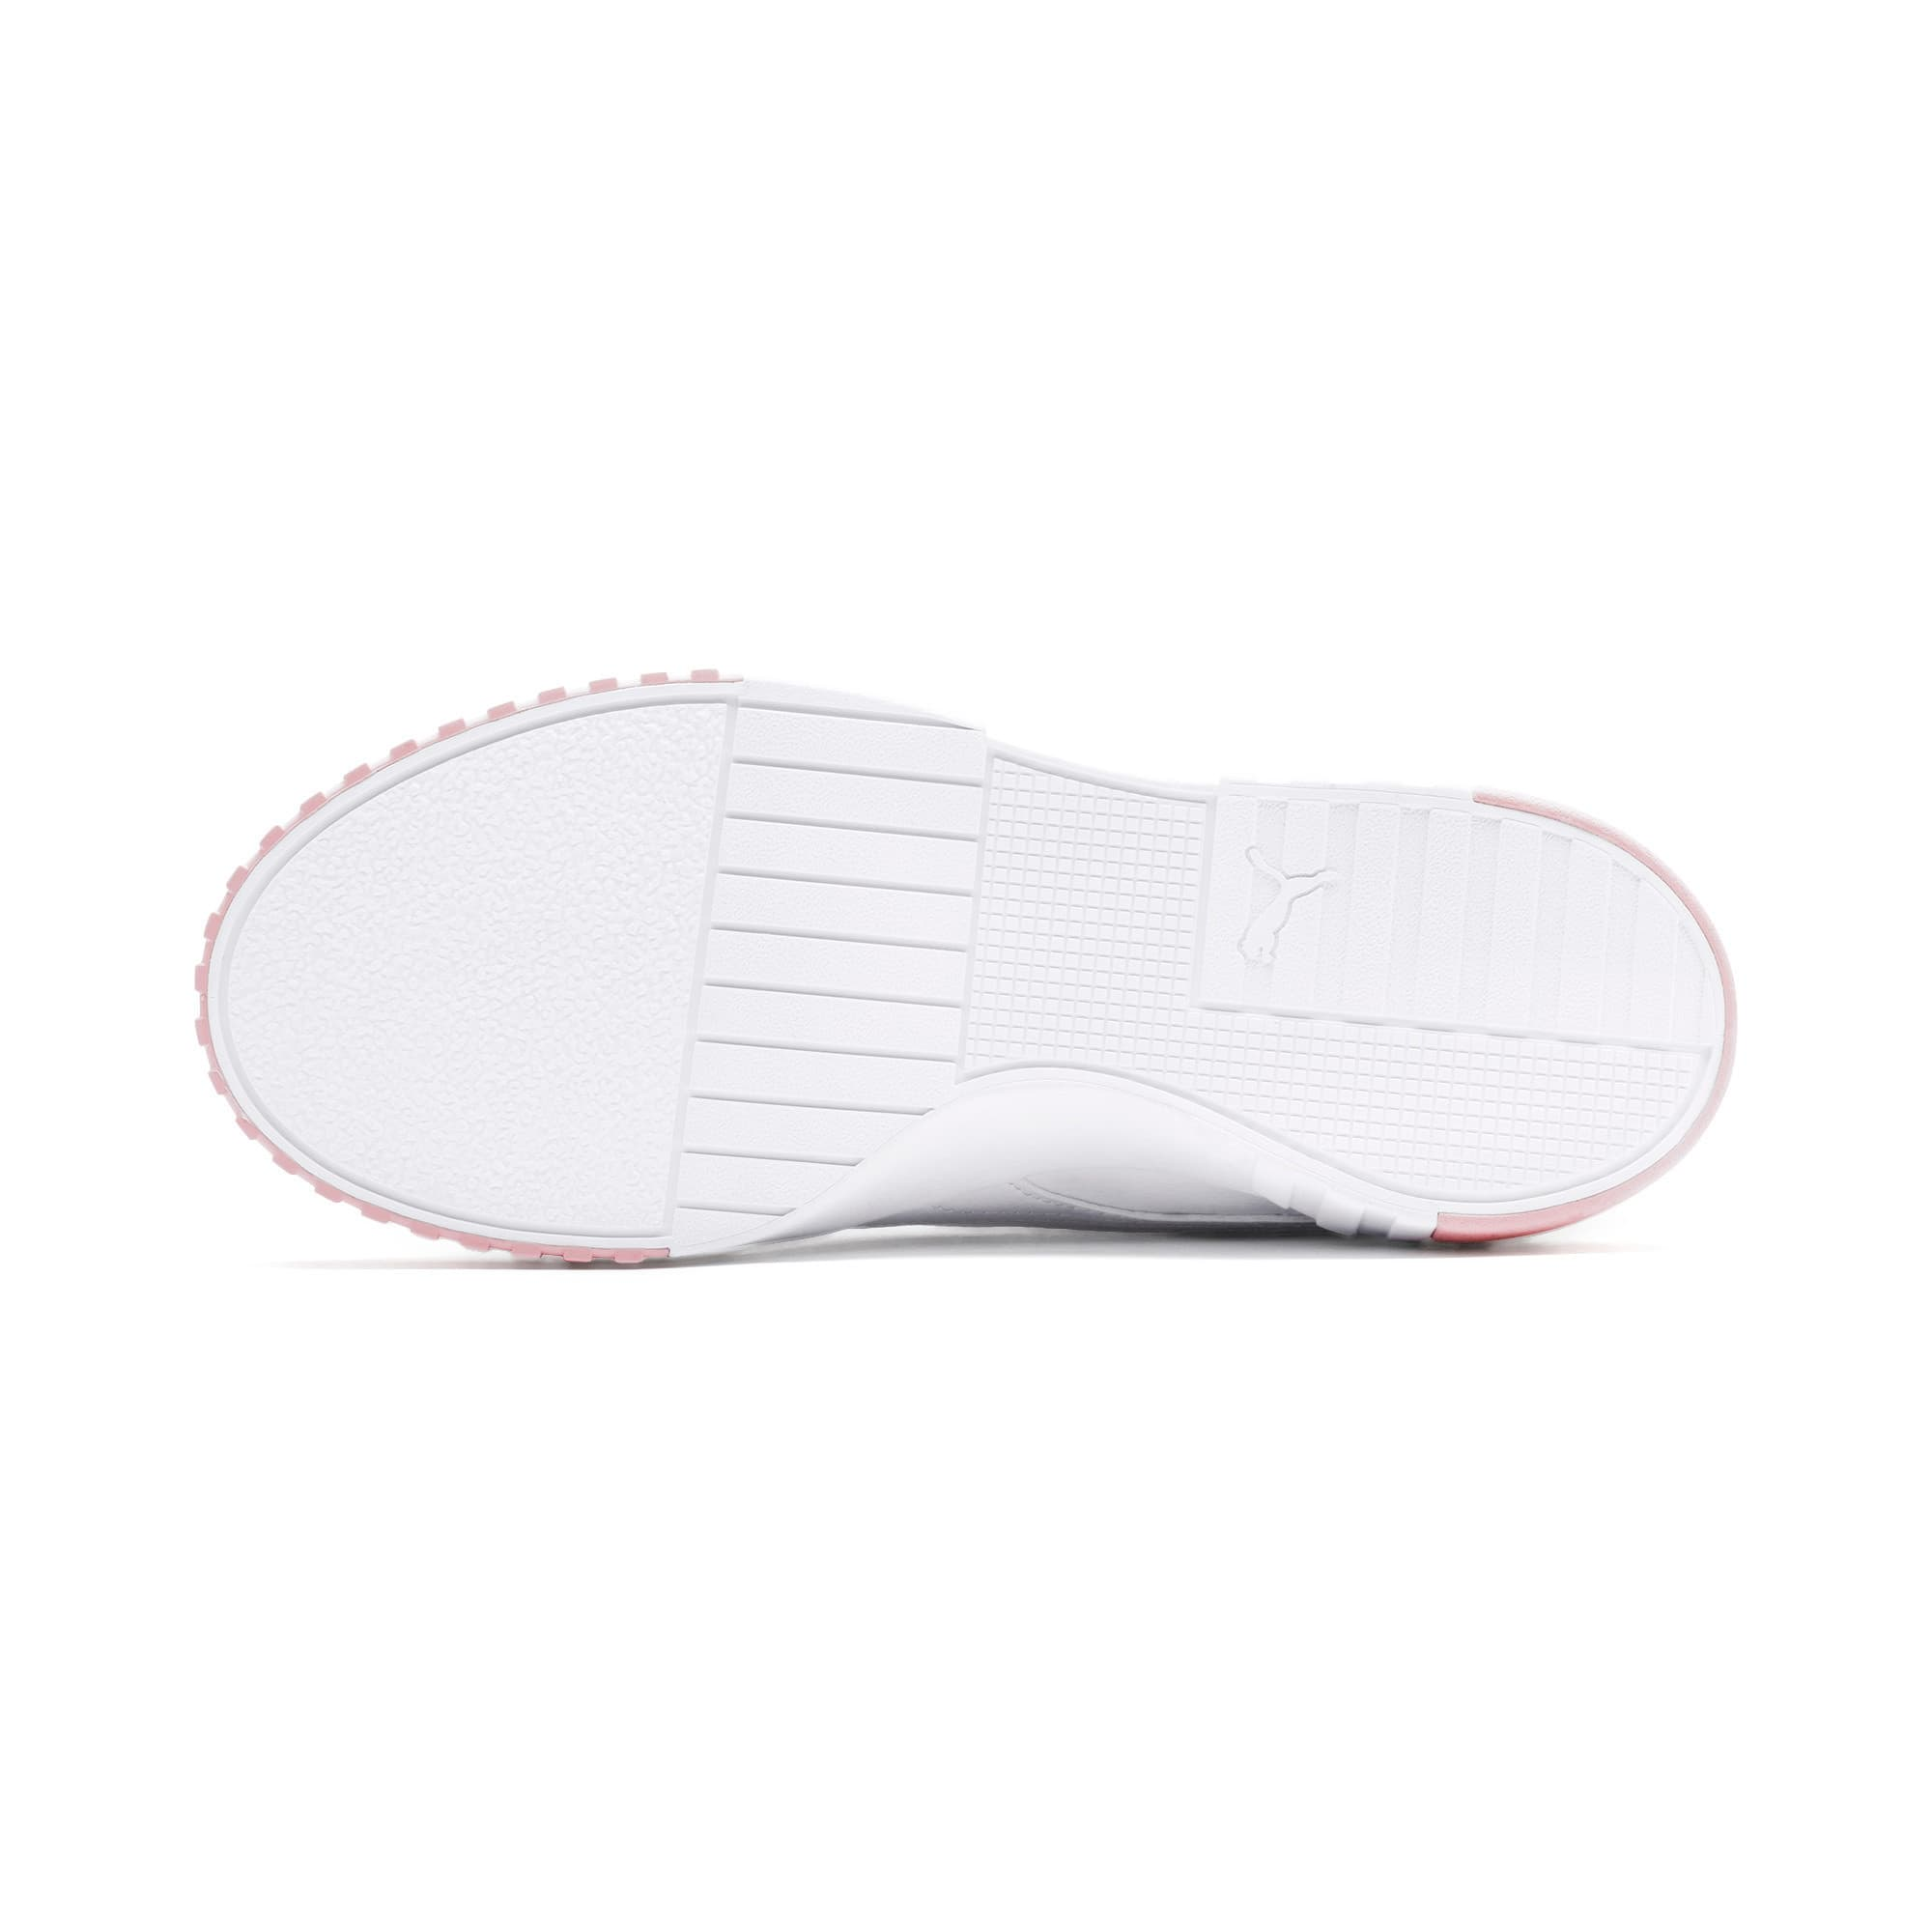 Thumbnail 5 of Cali Women's Trainers, Puma White-Rose Gold, medium